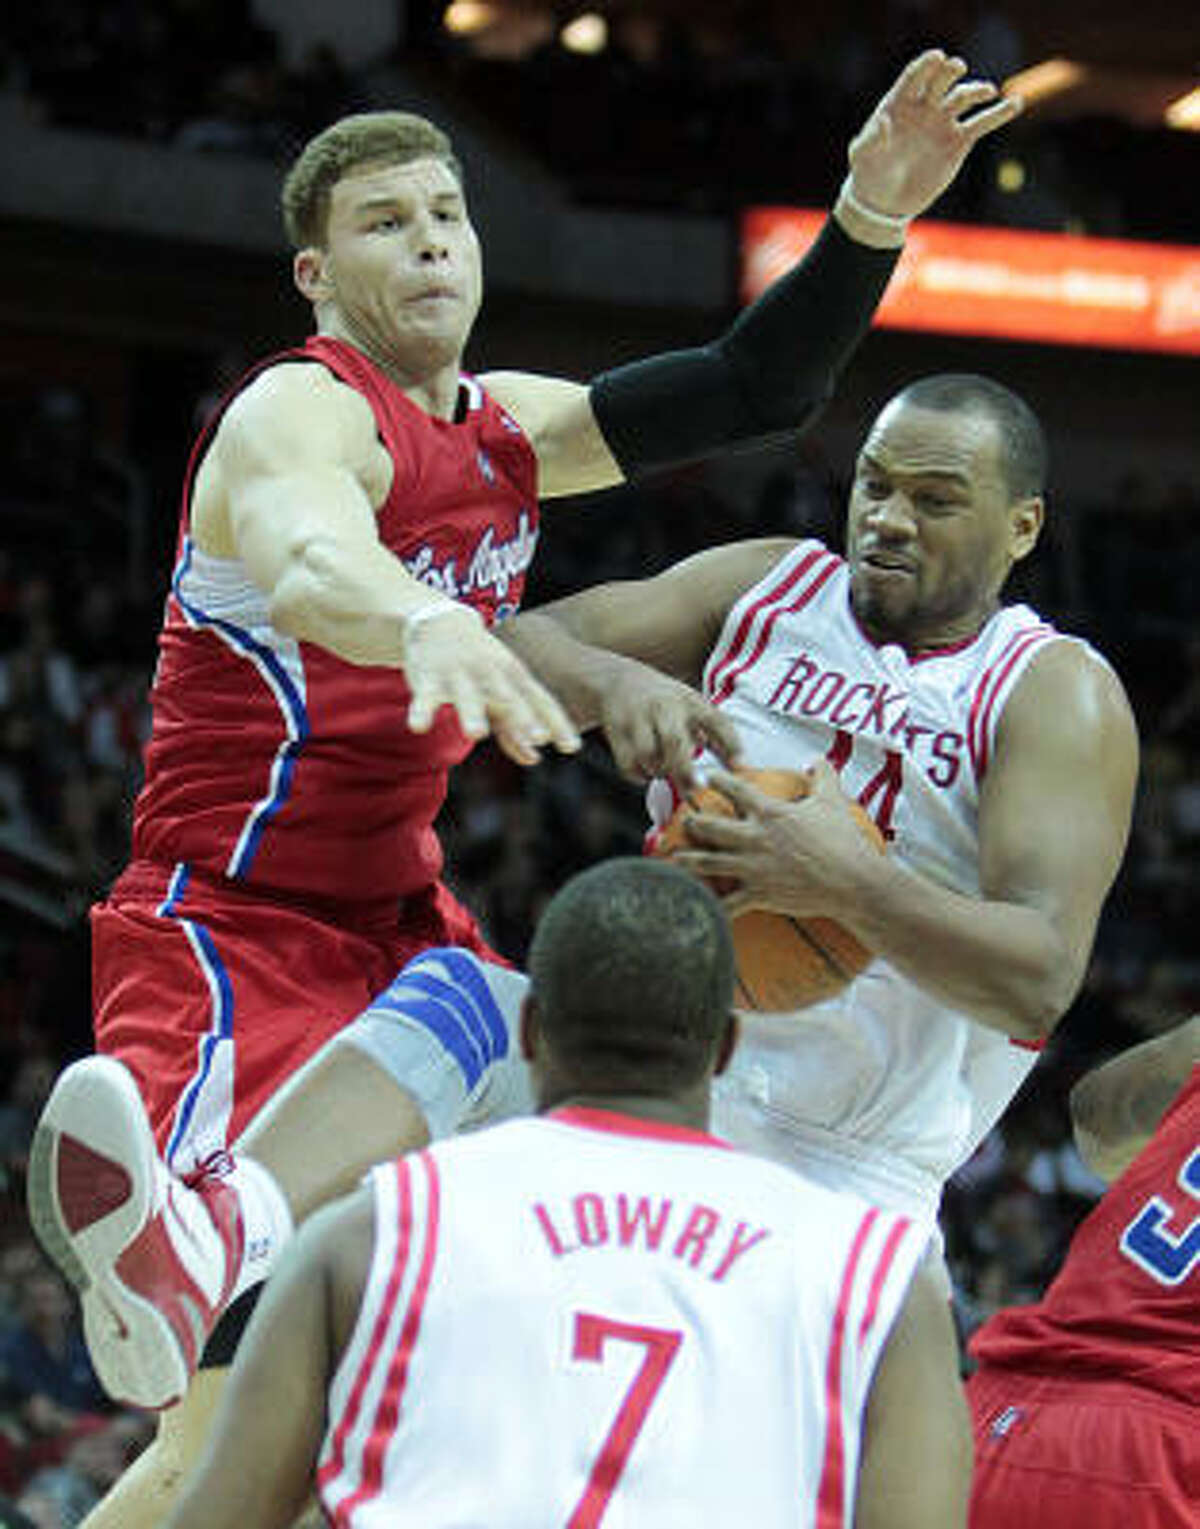 Rockets center Chuck Hayes (44) pulls down a rebound away from Clippers forward Blake Griffin (32).